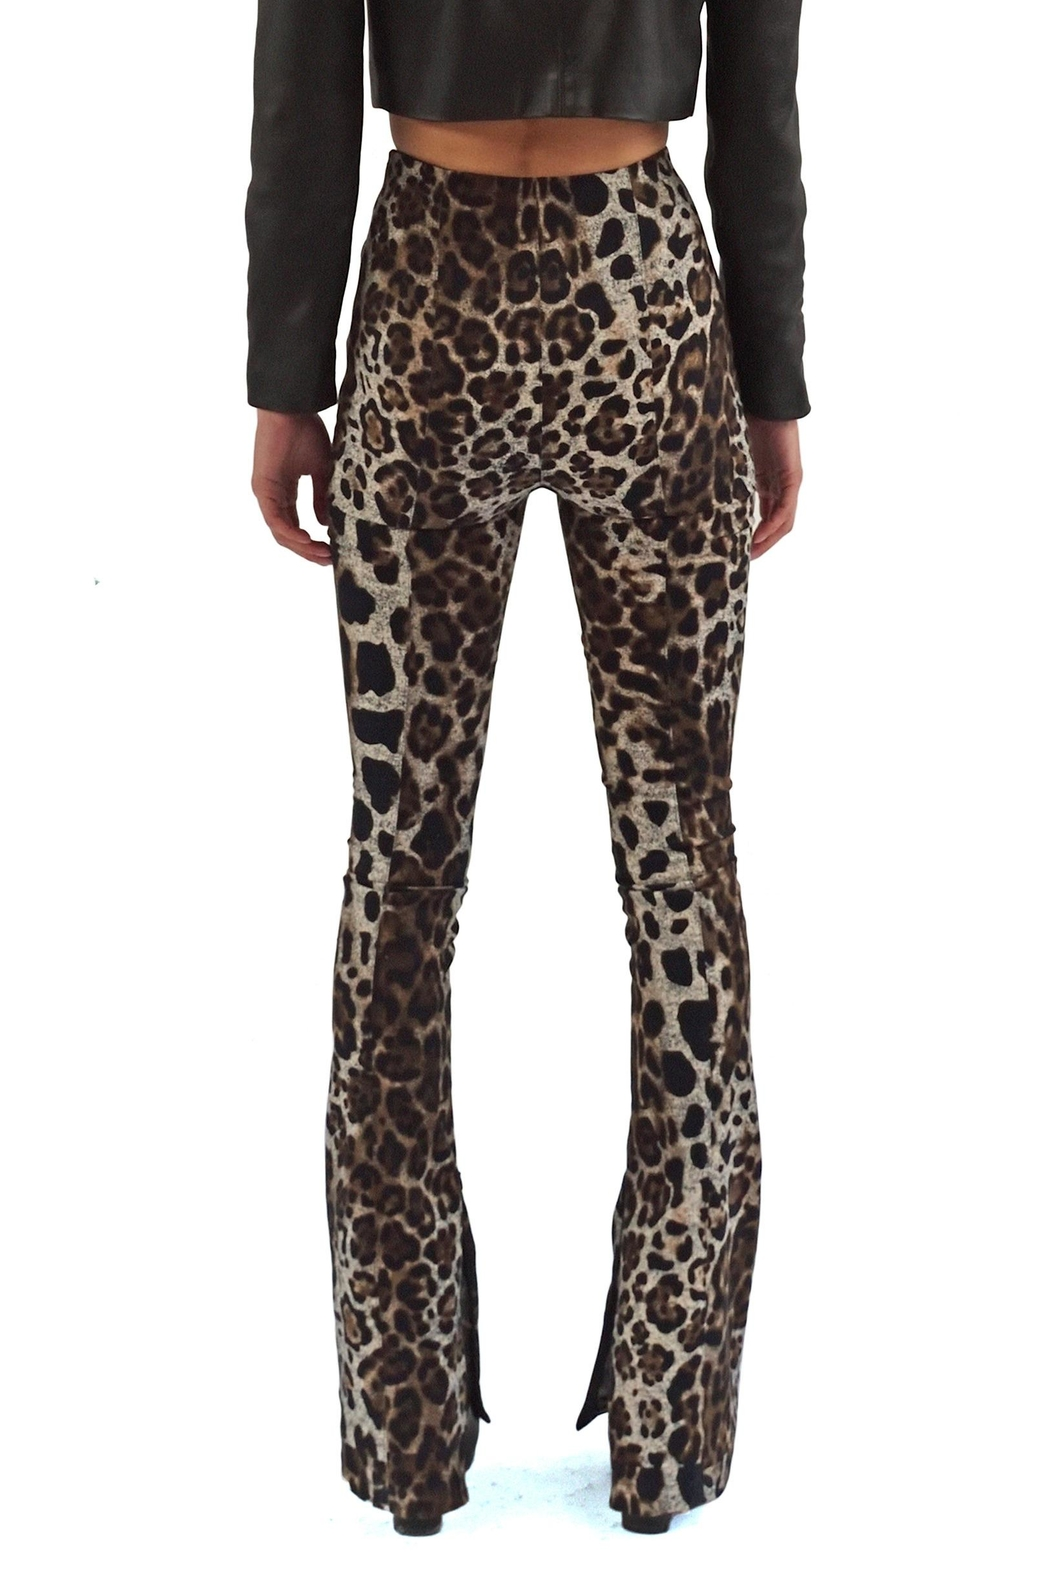 Viesca y Viesca Animal Print Pants - Side Cropped Image